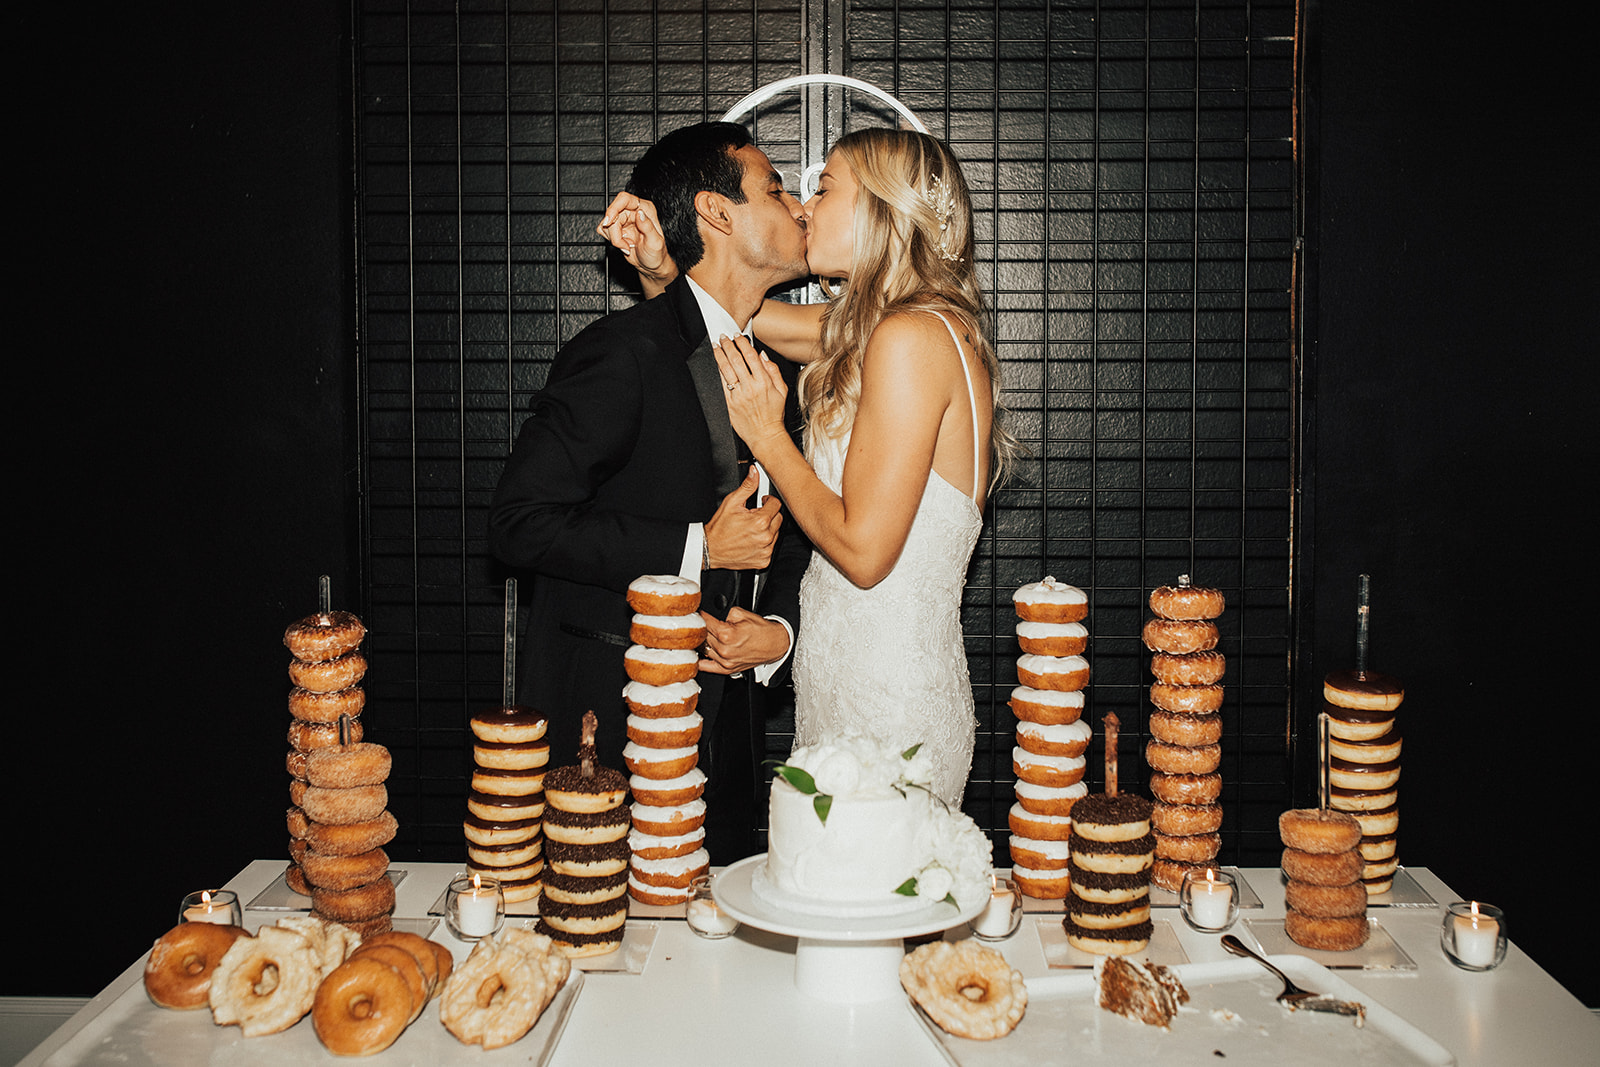 Wedding Cake and Donut Dessert Display